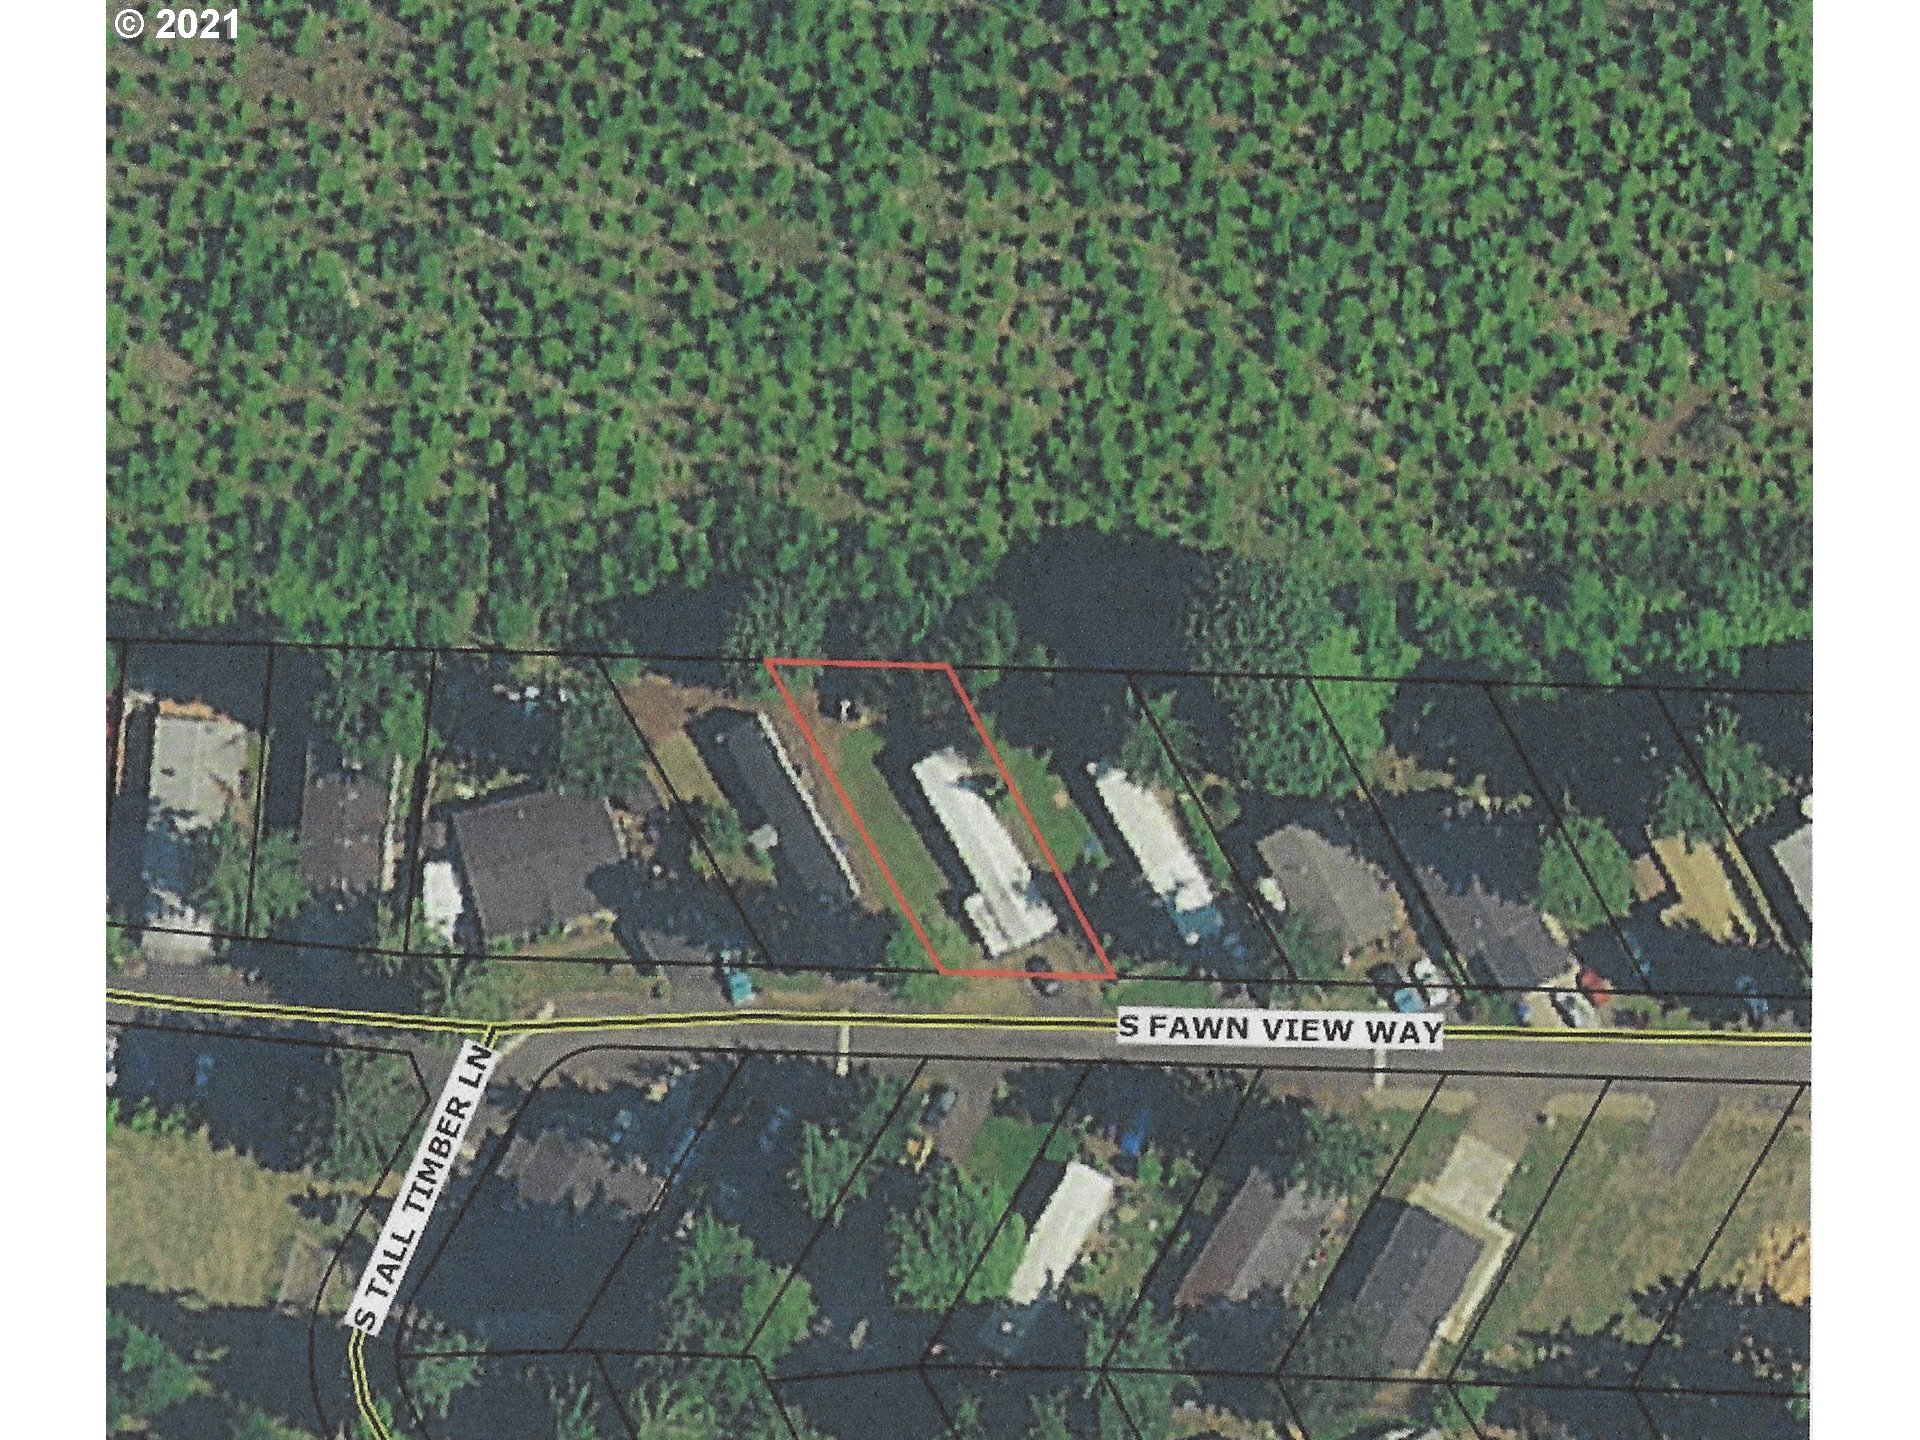 15651 S Fawn View Way, Molalla OR 97038